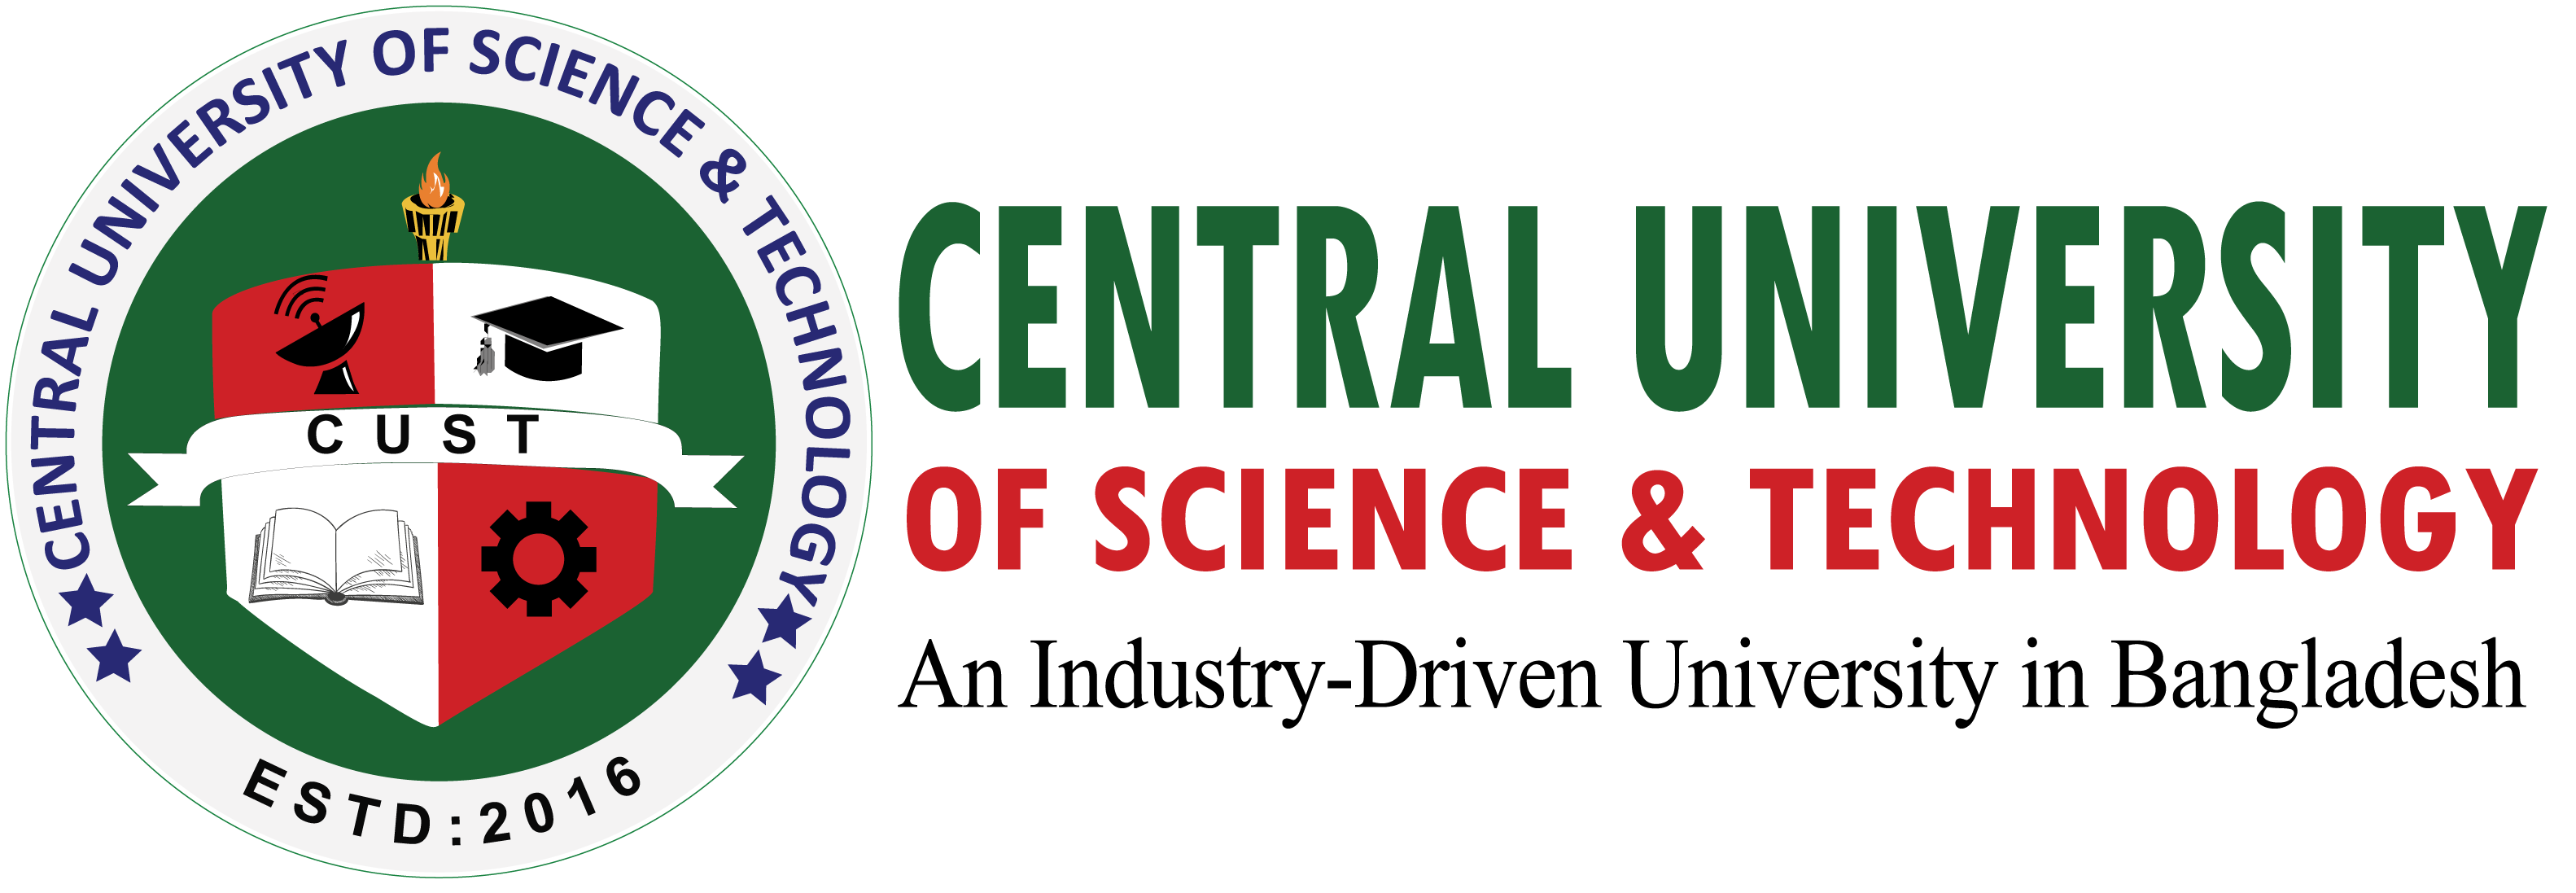 Approval, Govt. & UGC - Central University of Science & Technology